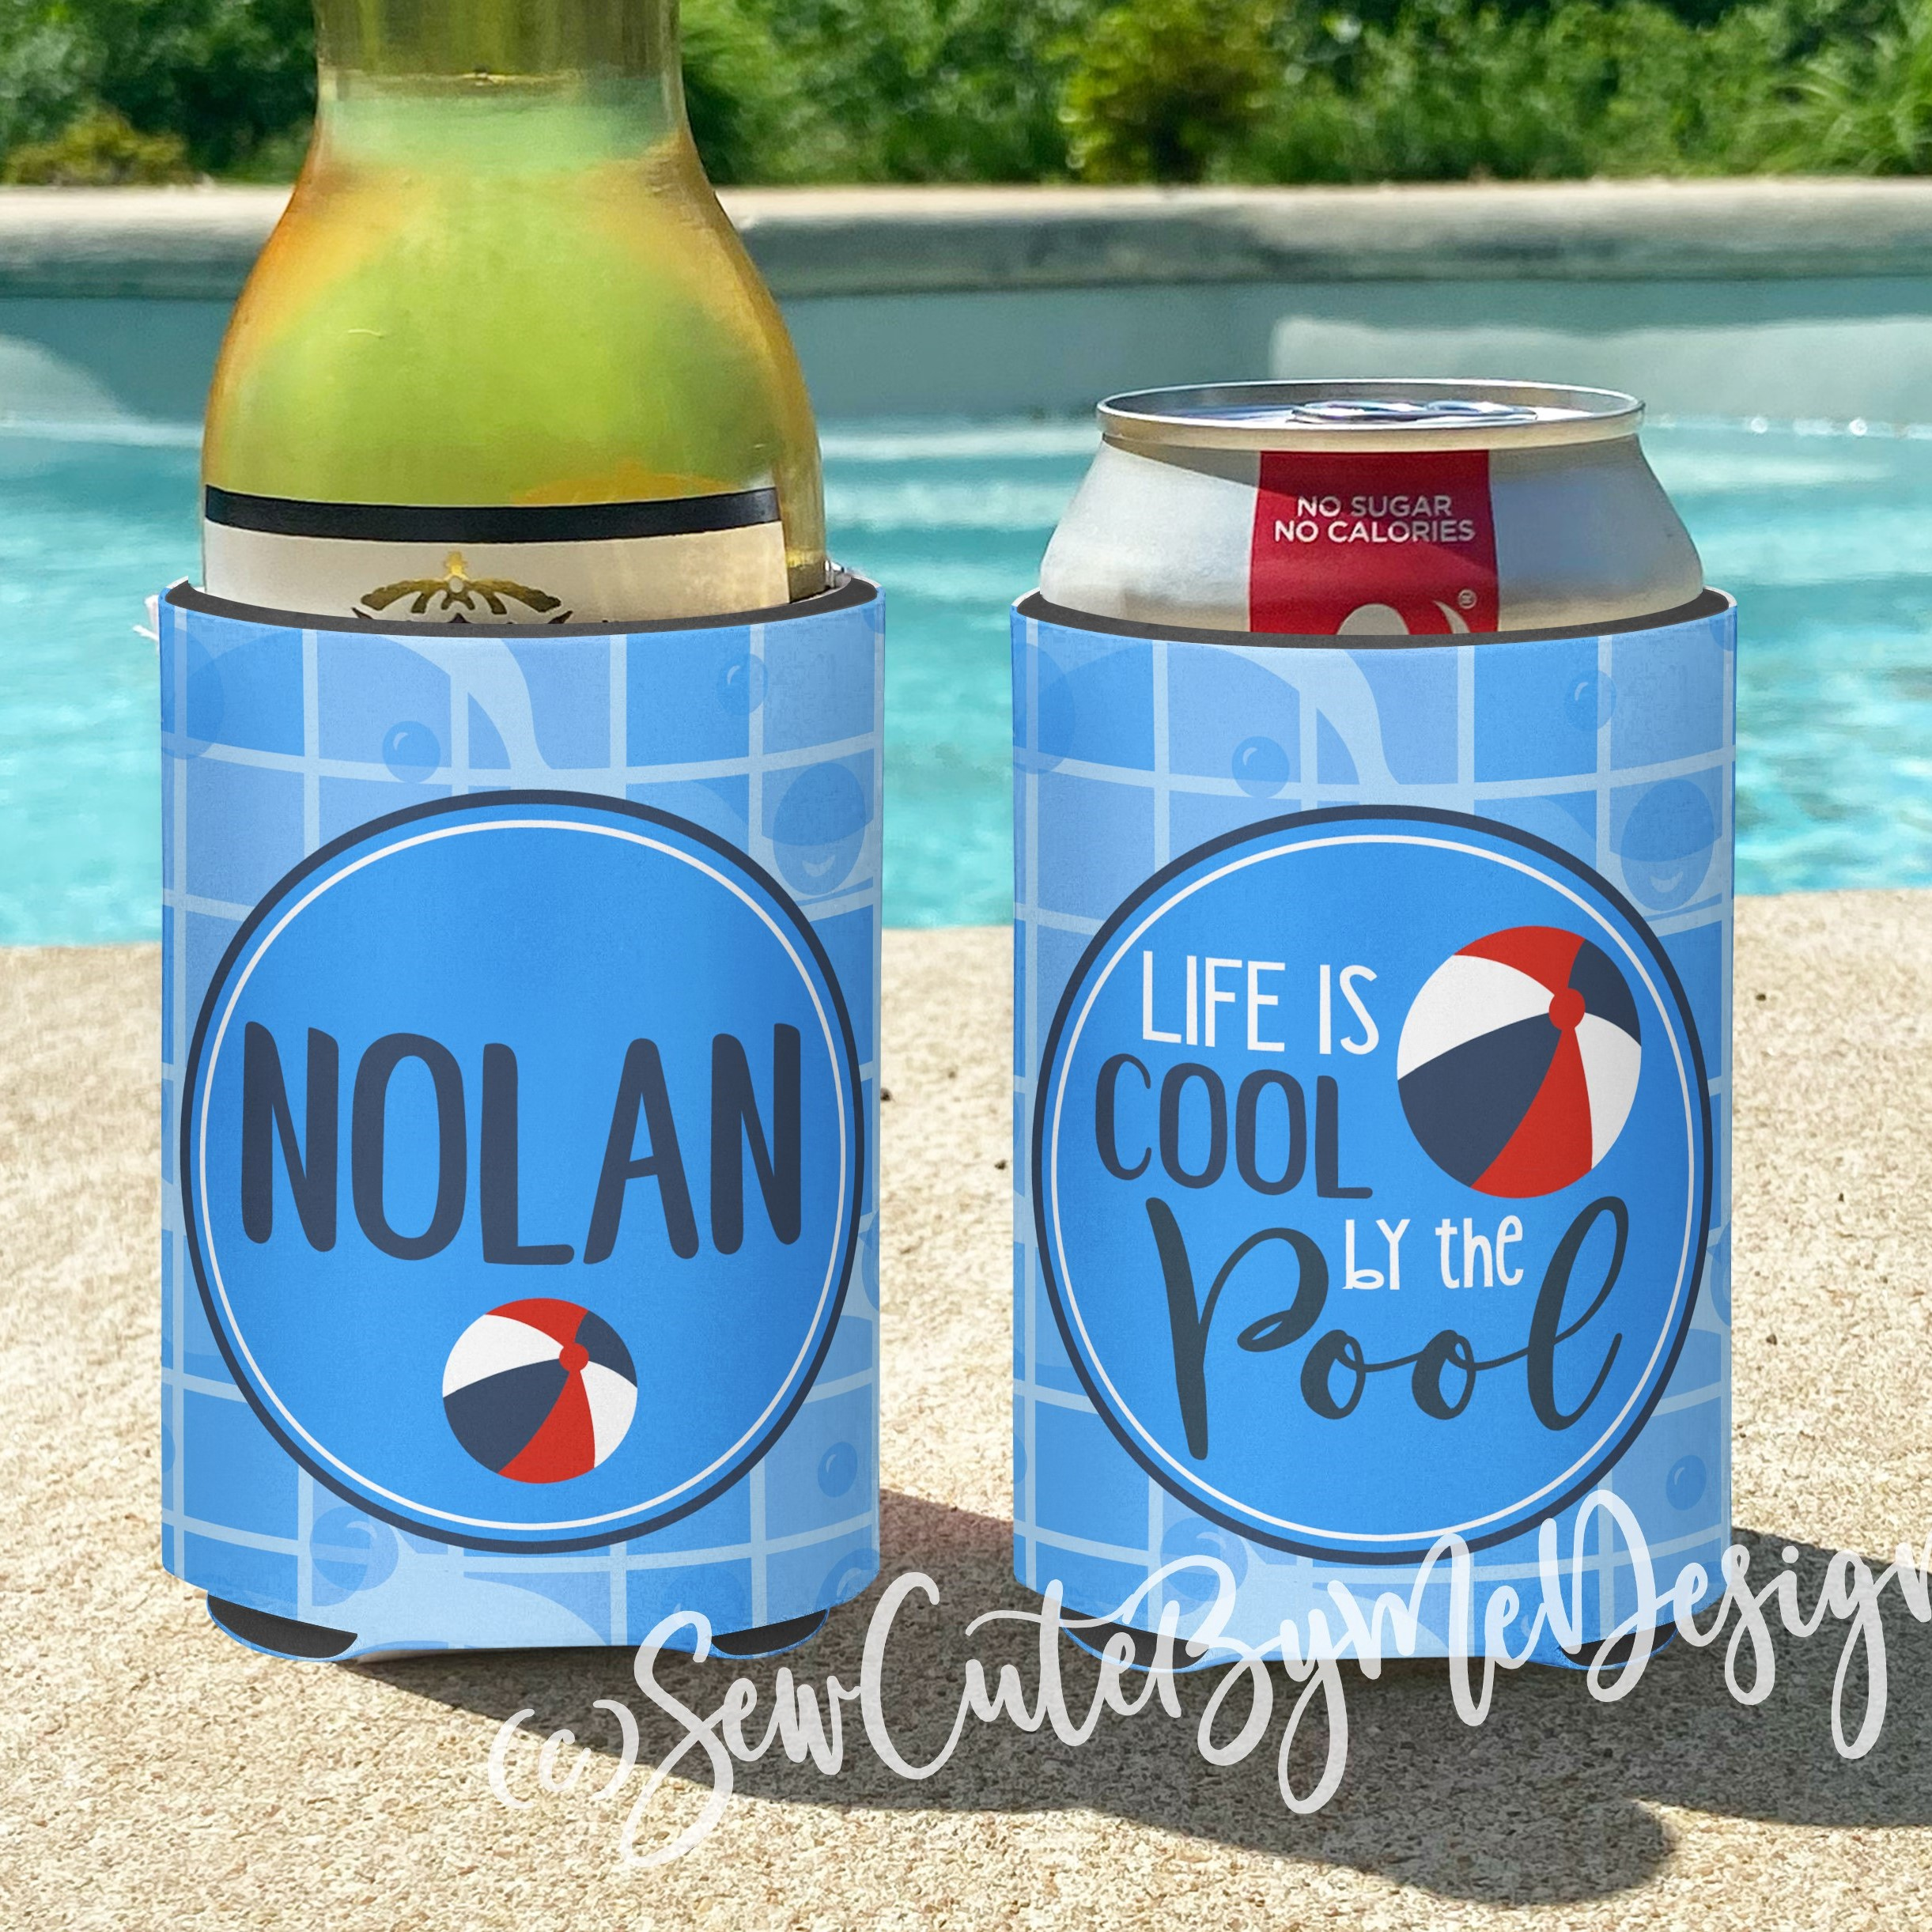 Pool Party Koozies or coolies - Beach Ball floaty - life is cool by the pool